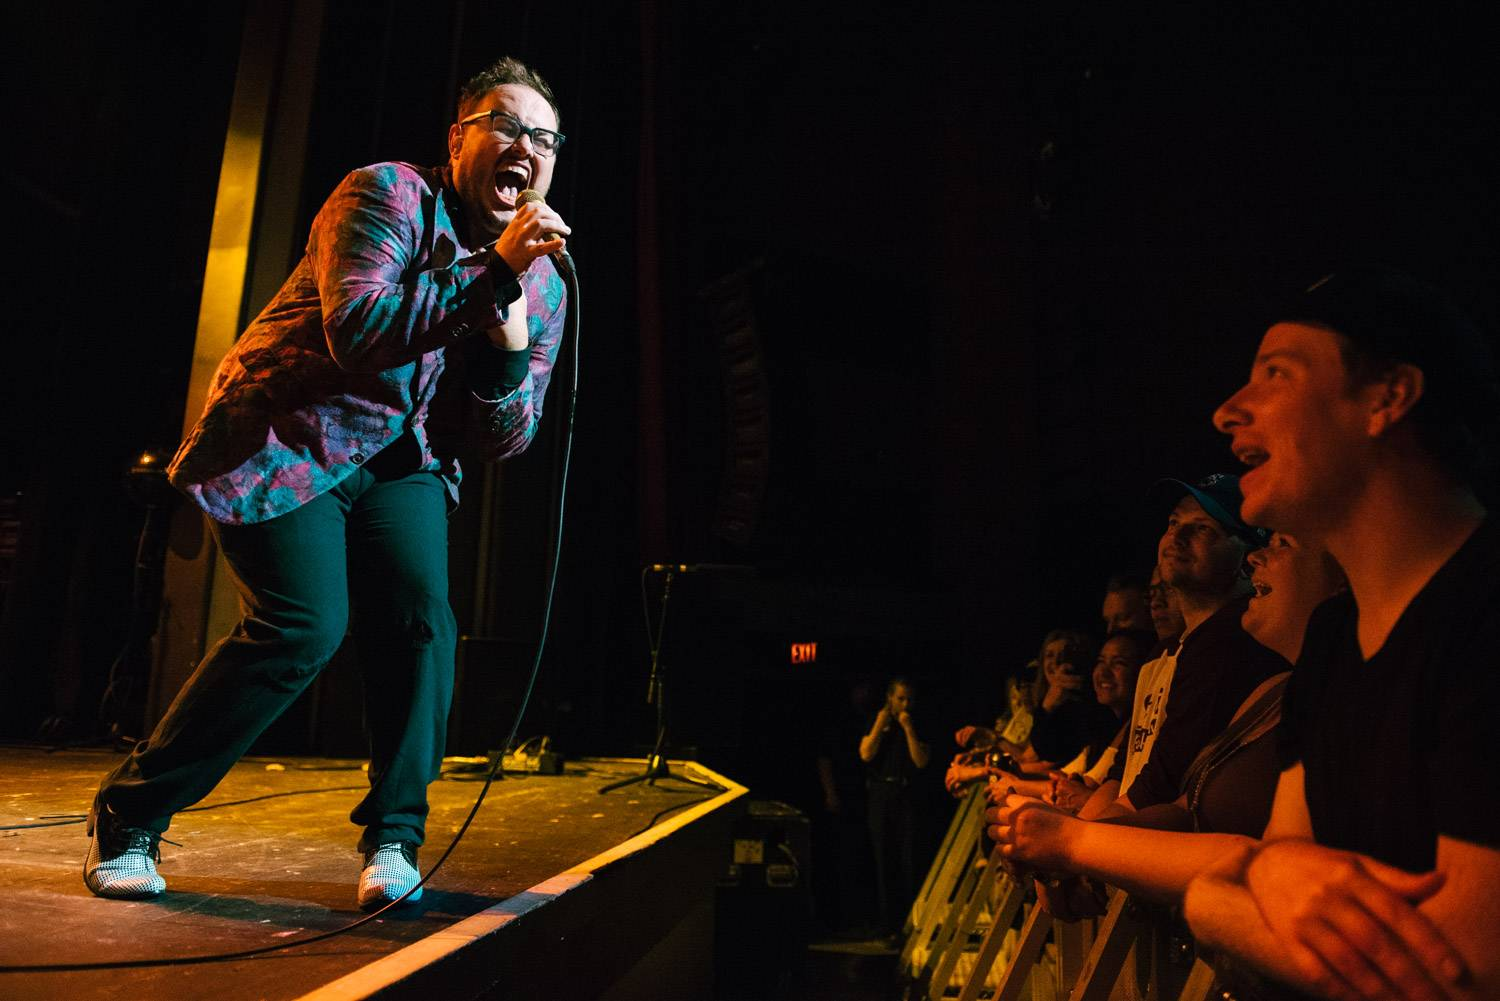 St. Paul and the Broken Bones at the Vogue Theatre, Vancouver, June 28 2018. Pavel Boiko photo.